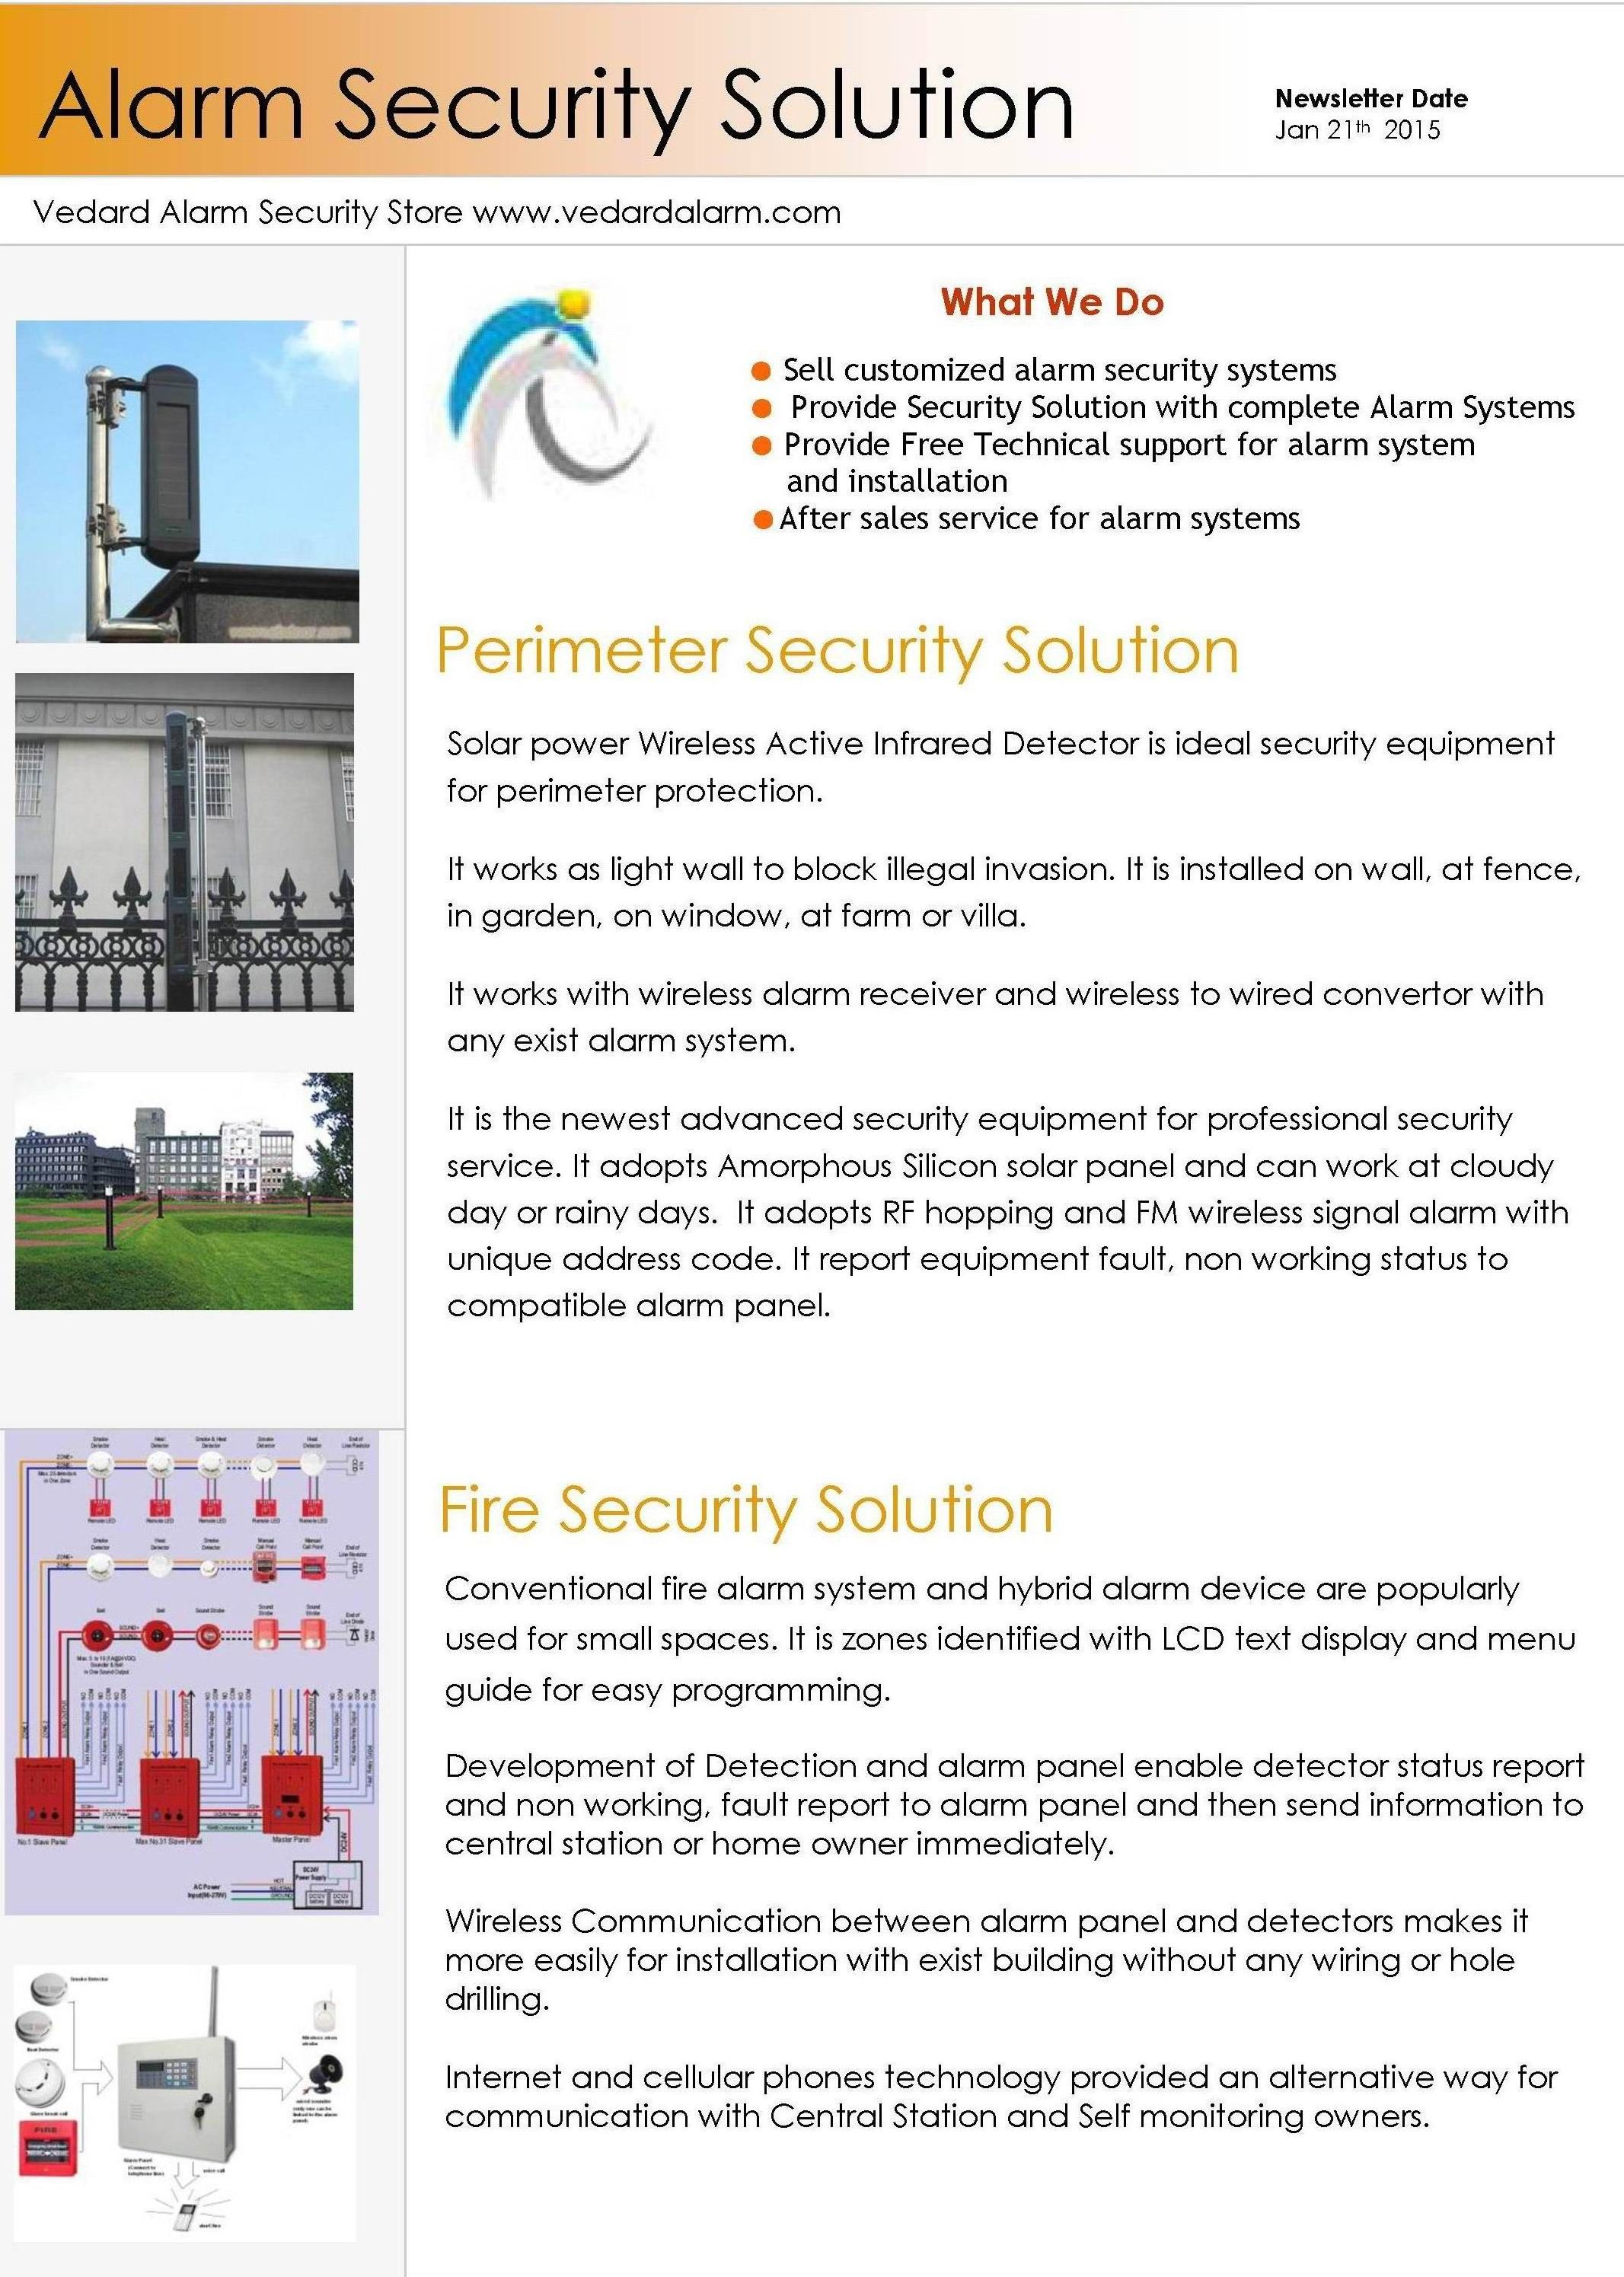 Security service alarm solution for perimeter protection and